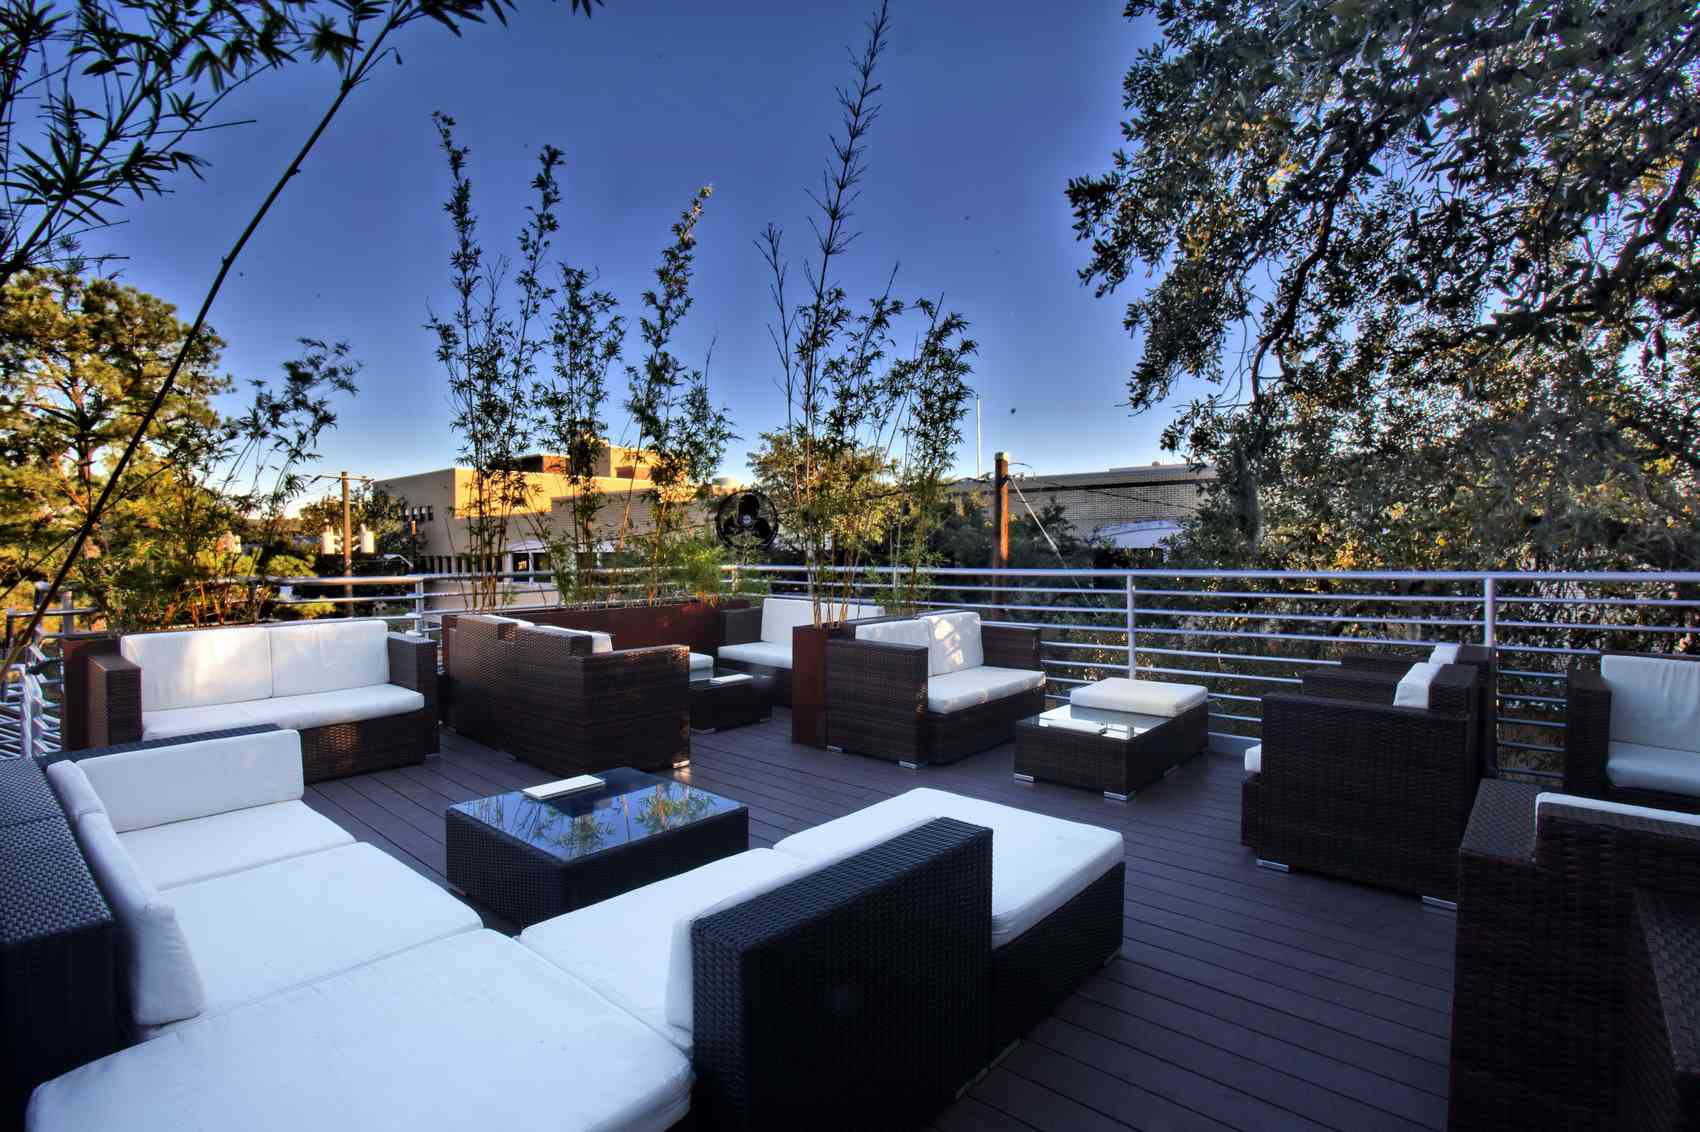 Roof deck seating at Courtesy of The Perch at Local 11 Ten